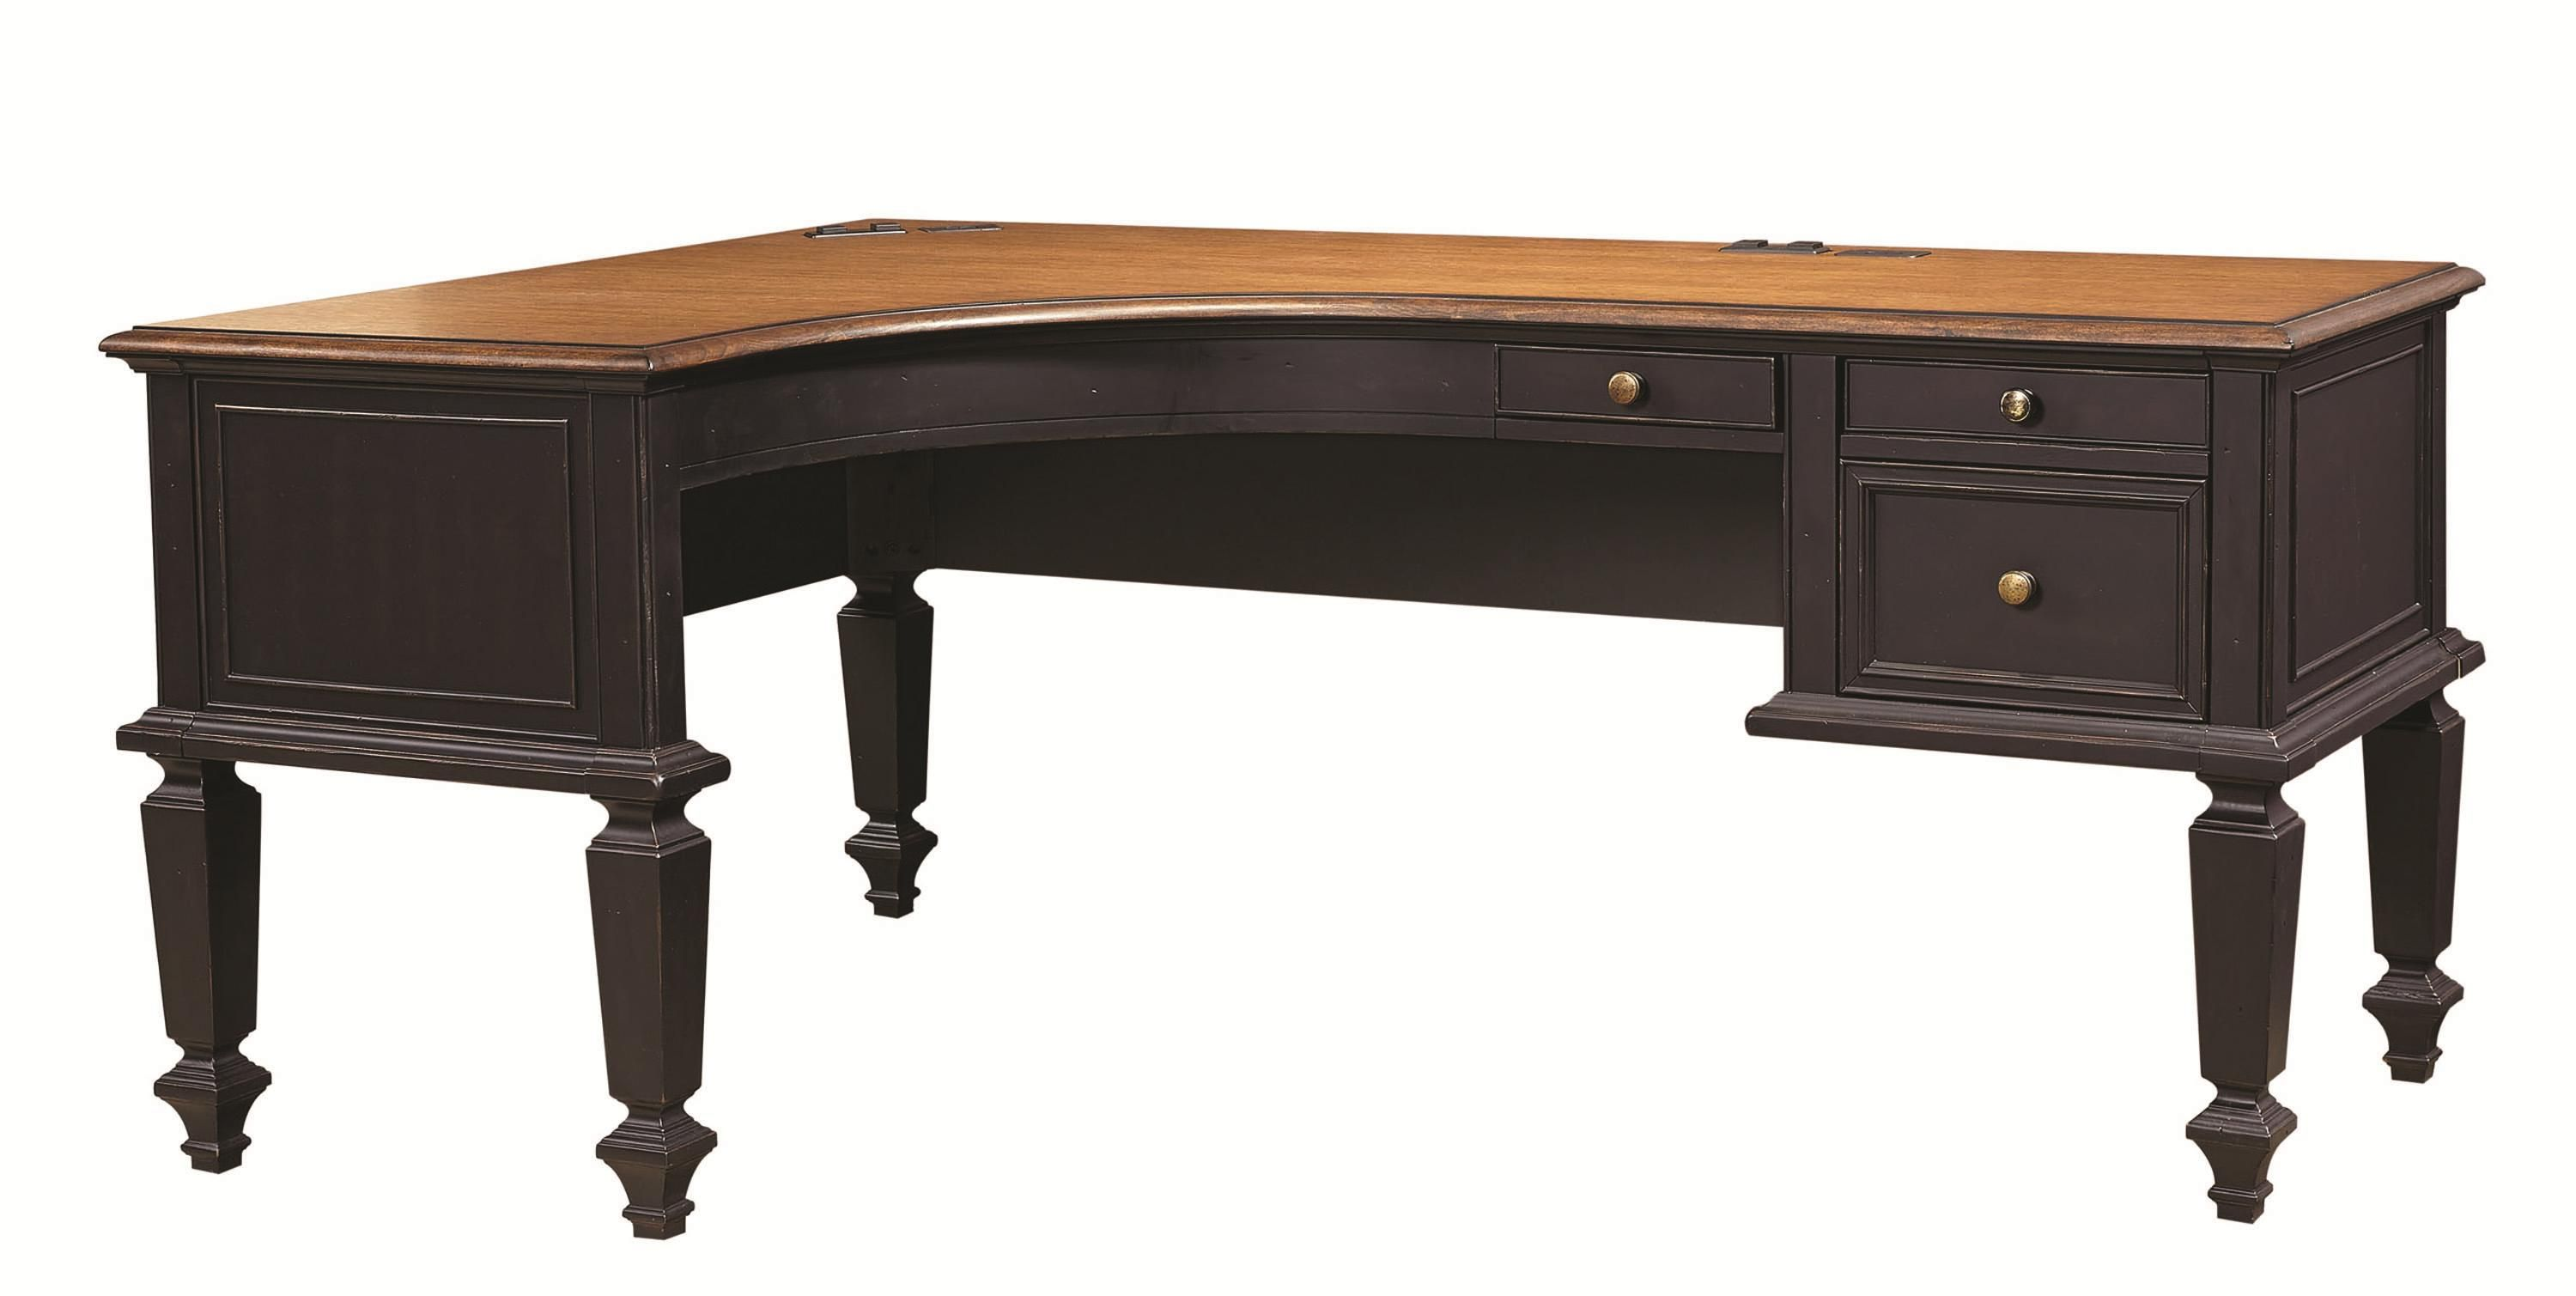 Ravenwood L Shaped Desk by Aspenhome. Ravenwood L Shaped Desk by Aspenhome   office   Pinterest   Desks